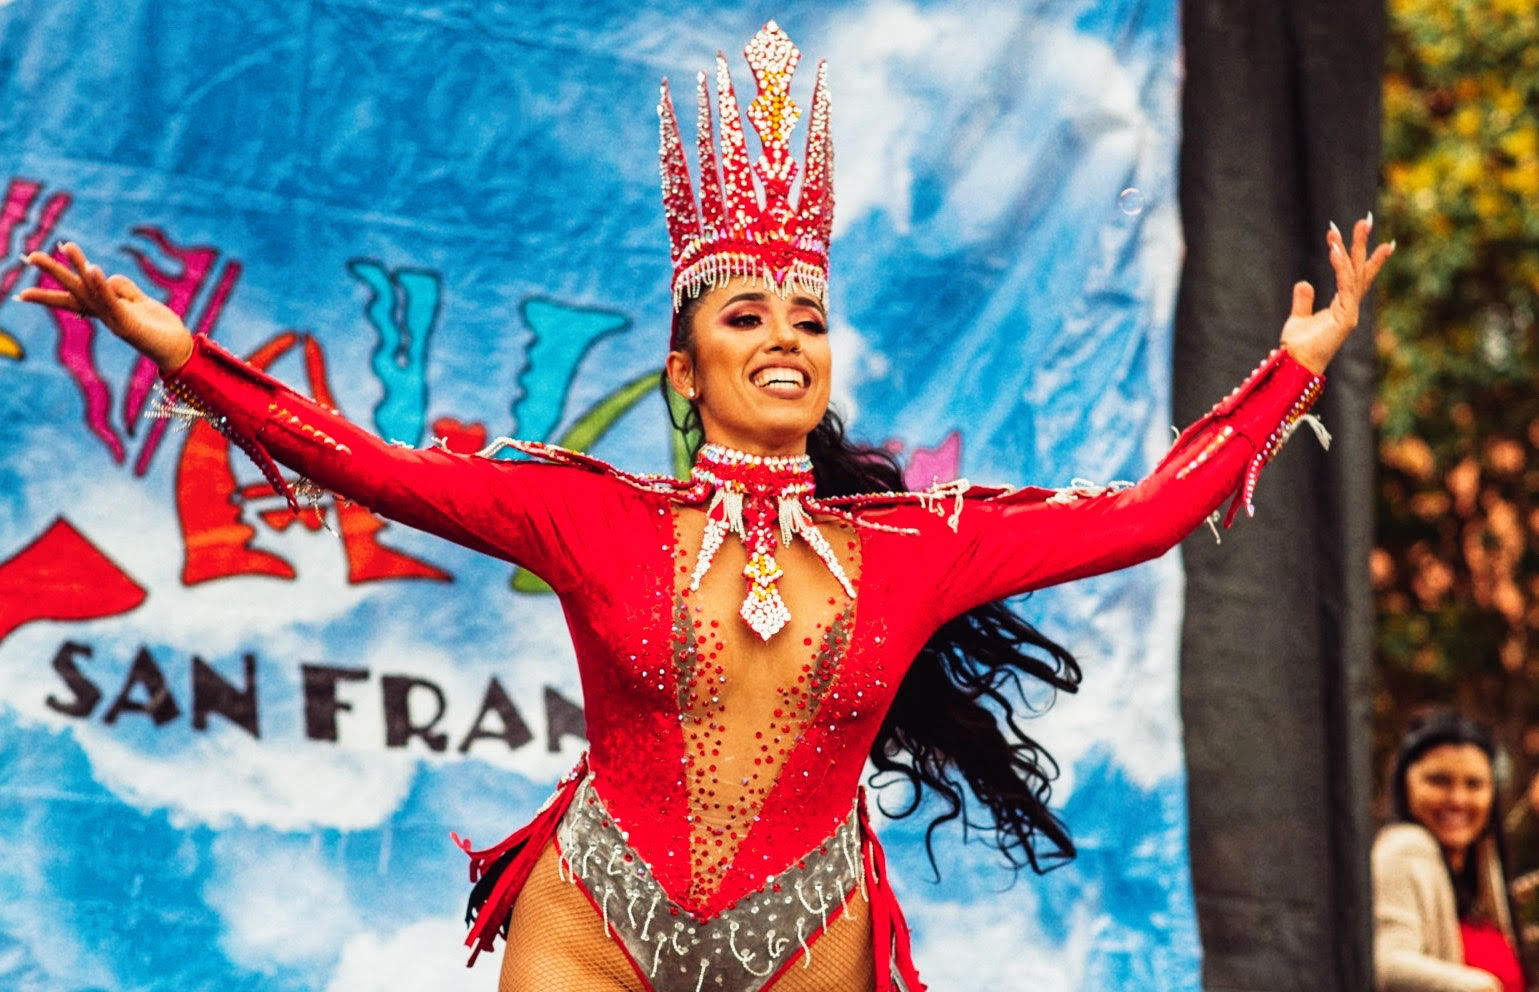 New class! Samba/Afro-Brazilian with Mayela Carrasco